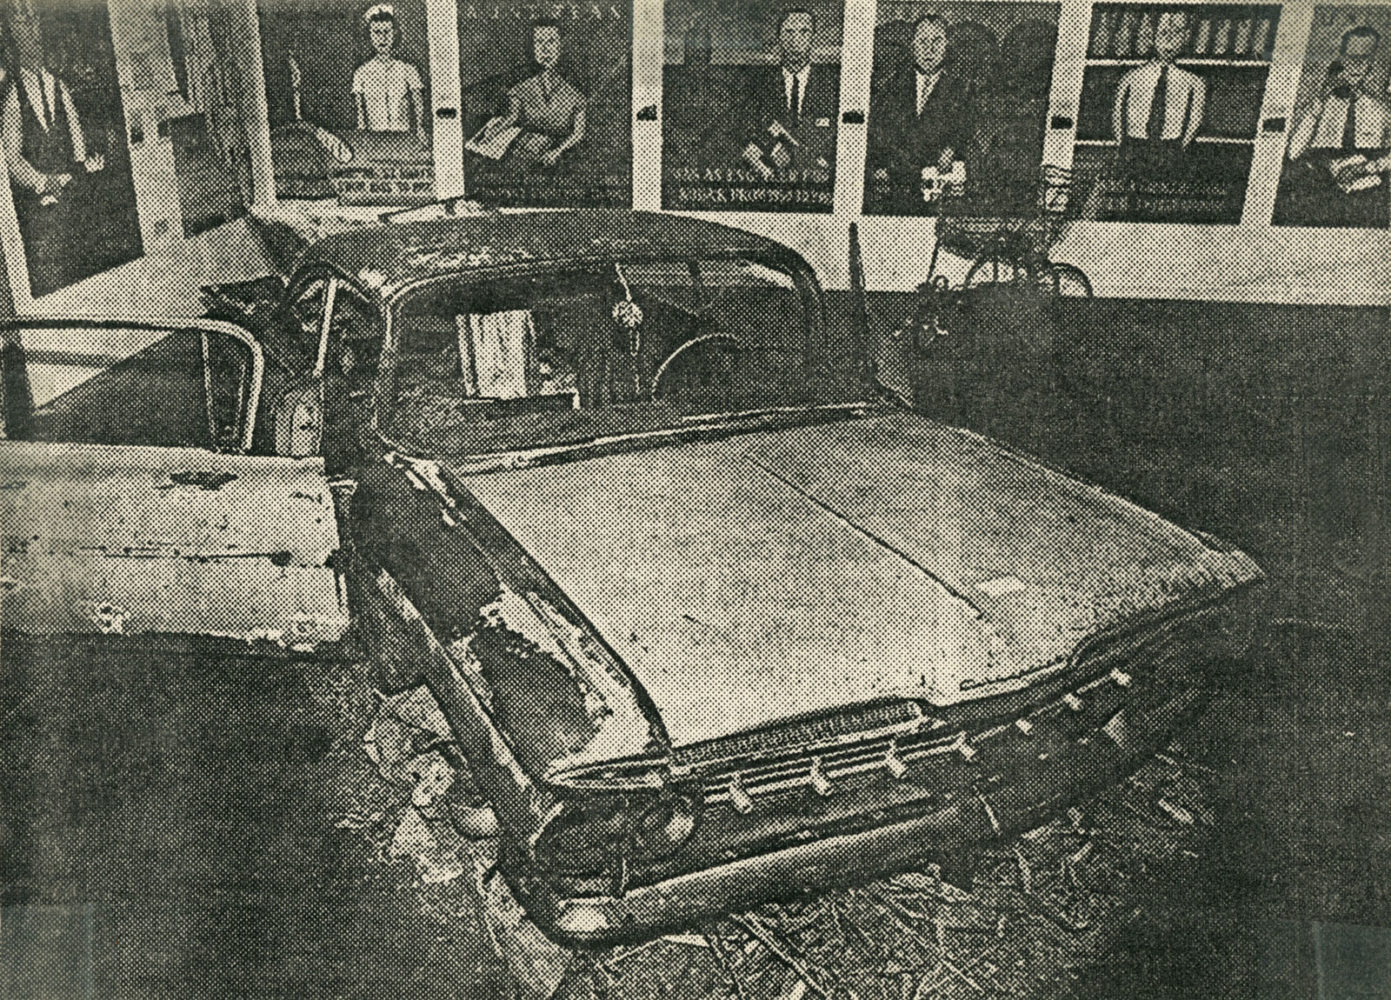 """Installation photo from City newspaper from 1990 Pyramid Arts Center show entitled """"The City"""""""